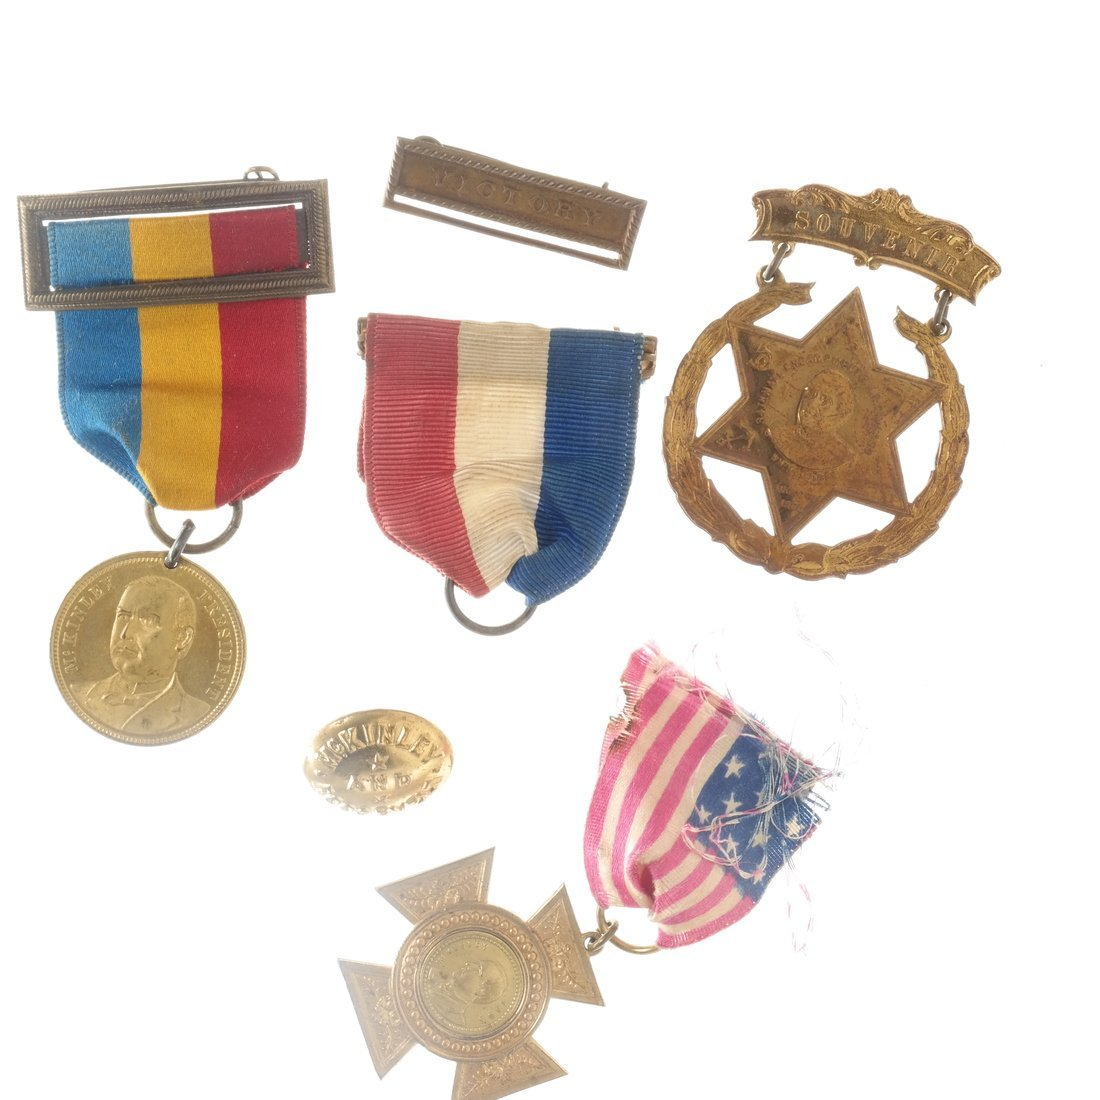 William McKinley - Campaign and Memorial Items - 4